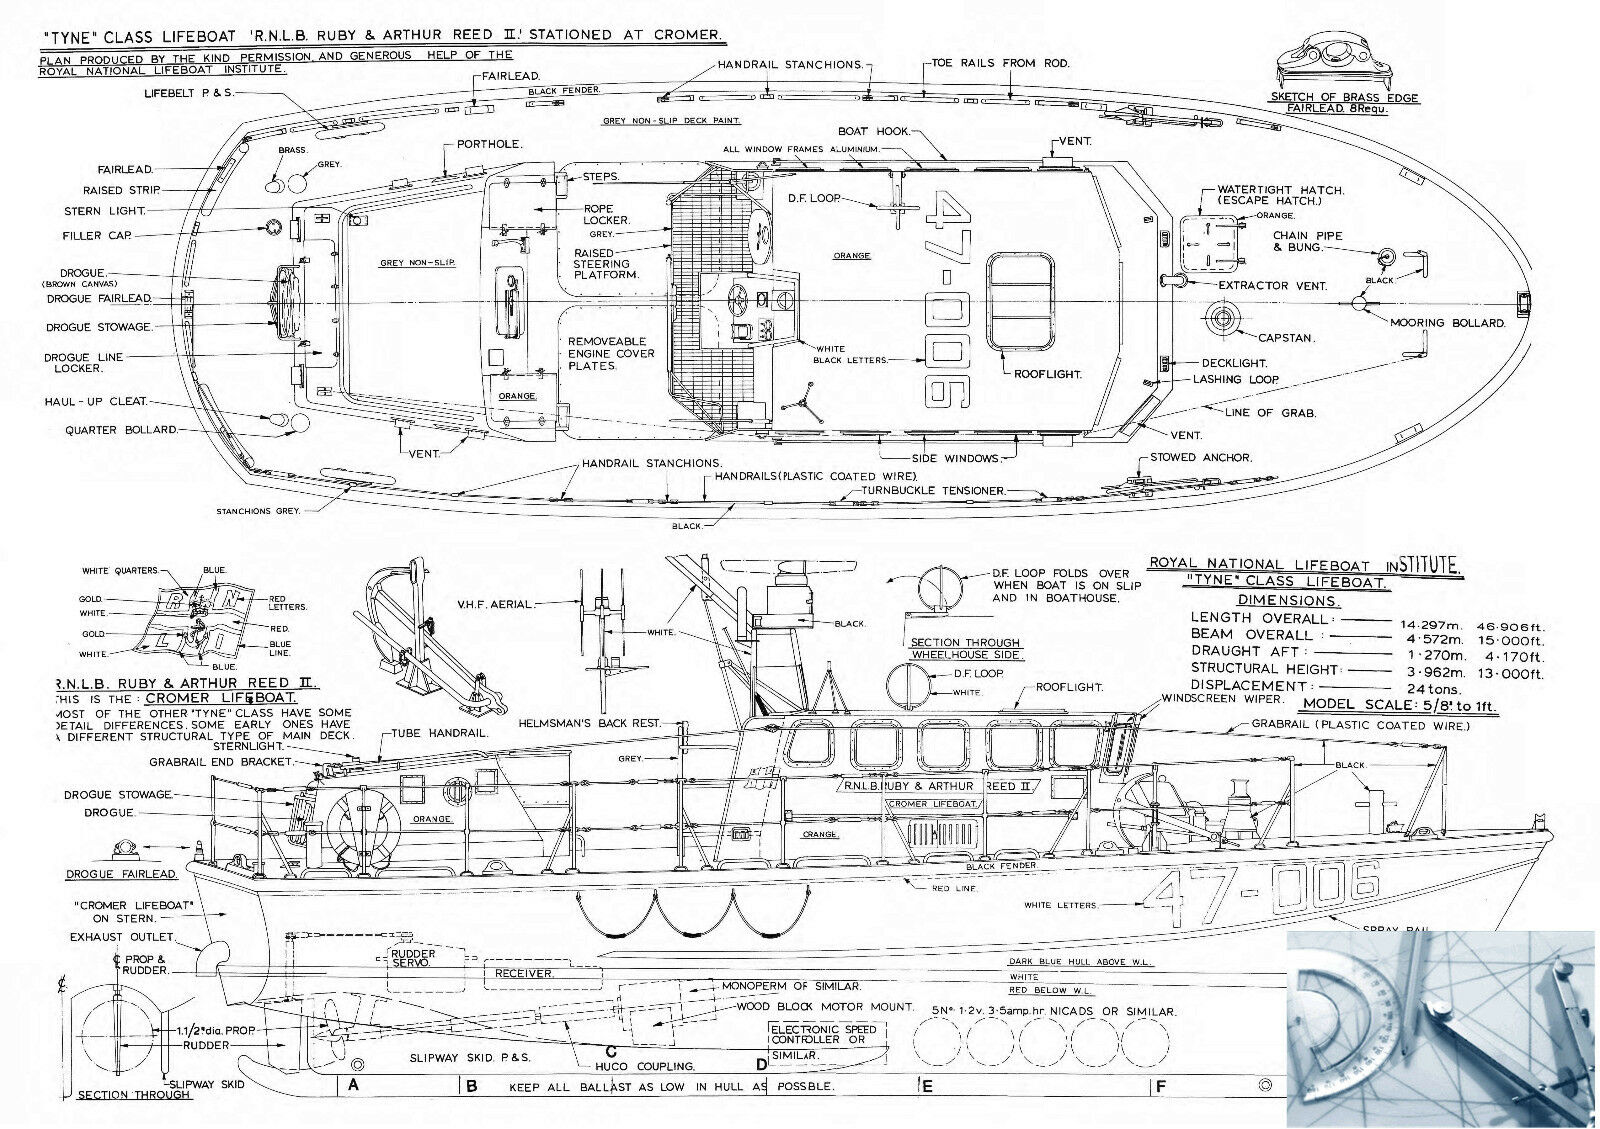 Model Boat PLAN Scale Tyne Class Lifeboat R/C F/S Printed